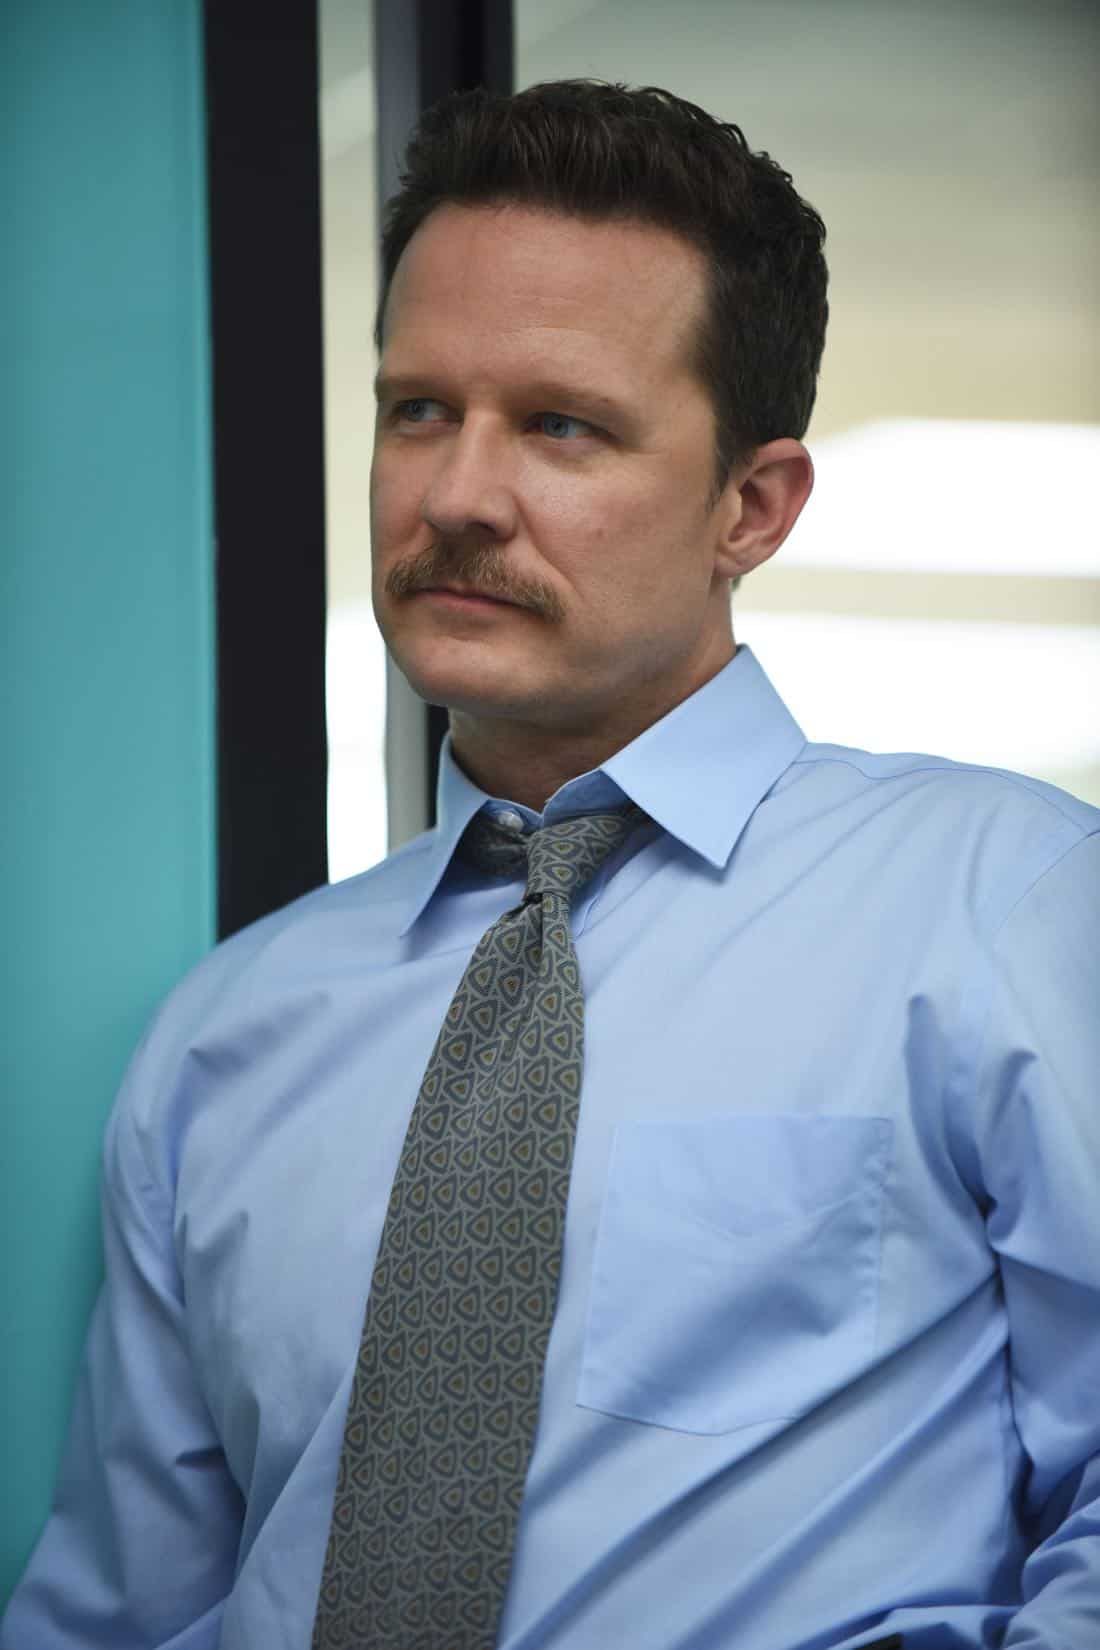 """THE ASSASSINATION OF GIANNI VERSACE: AMERICAN CRIME STORY """"Manhunt"""" Episode 2 (Airs Wednesday. January 24, 10:00 p.m. e/p) -- Pictured: Will Chase as Scrimshaw. CR: Ray Mickshaw/FX"""